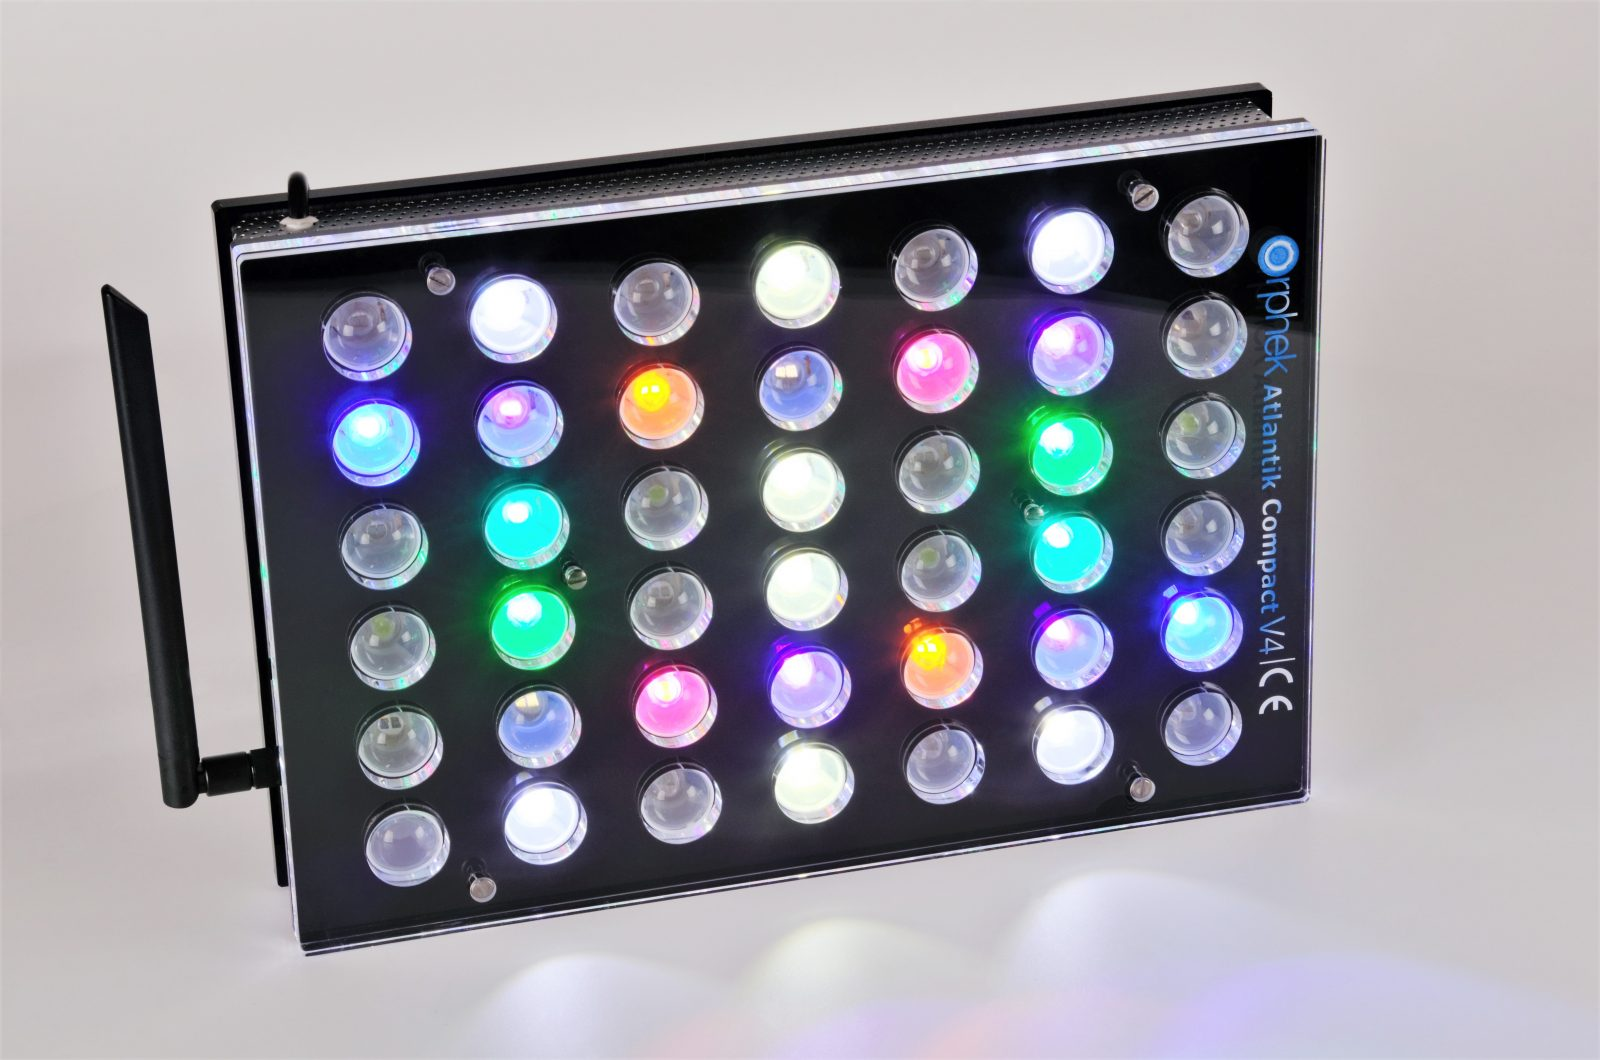 Orphek Aquarium LED Lighting Atlantik Compact V4 light on channel 1+3+4